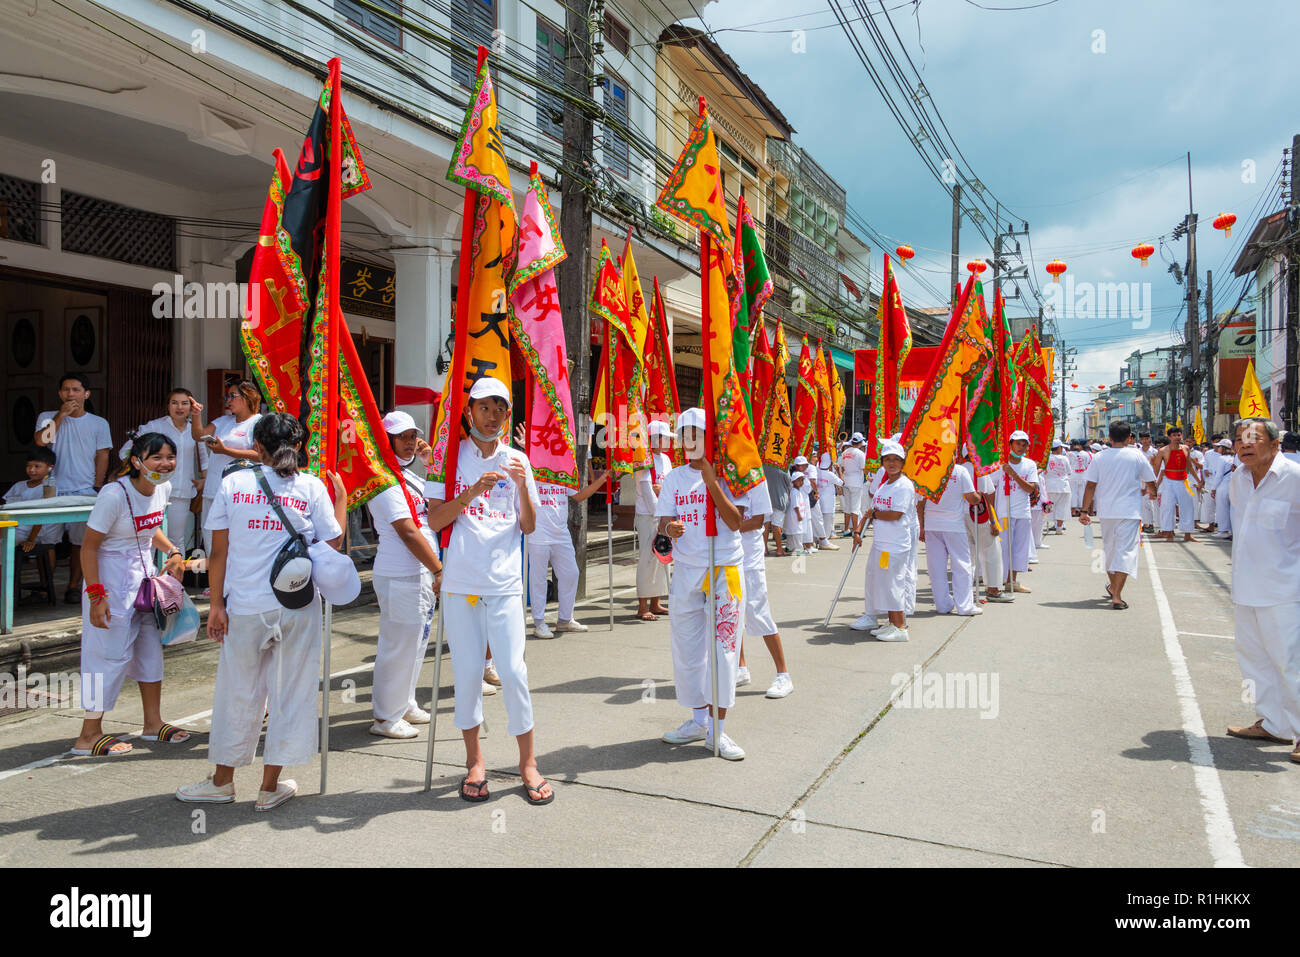 Phang Nga, Thailand - October 14, 2018: People in white dress holding flags marching on street in vegetarian festival parade in Phang Nga, Thailand - Stock Image